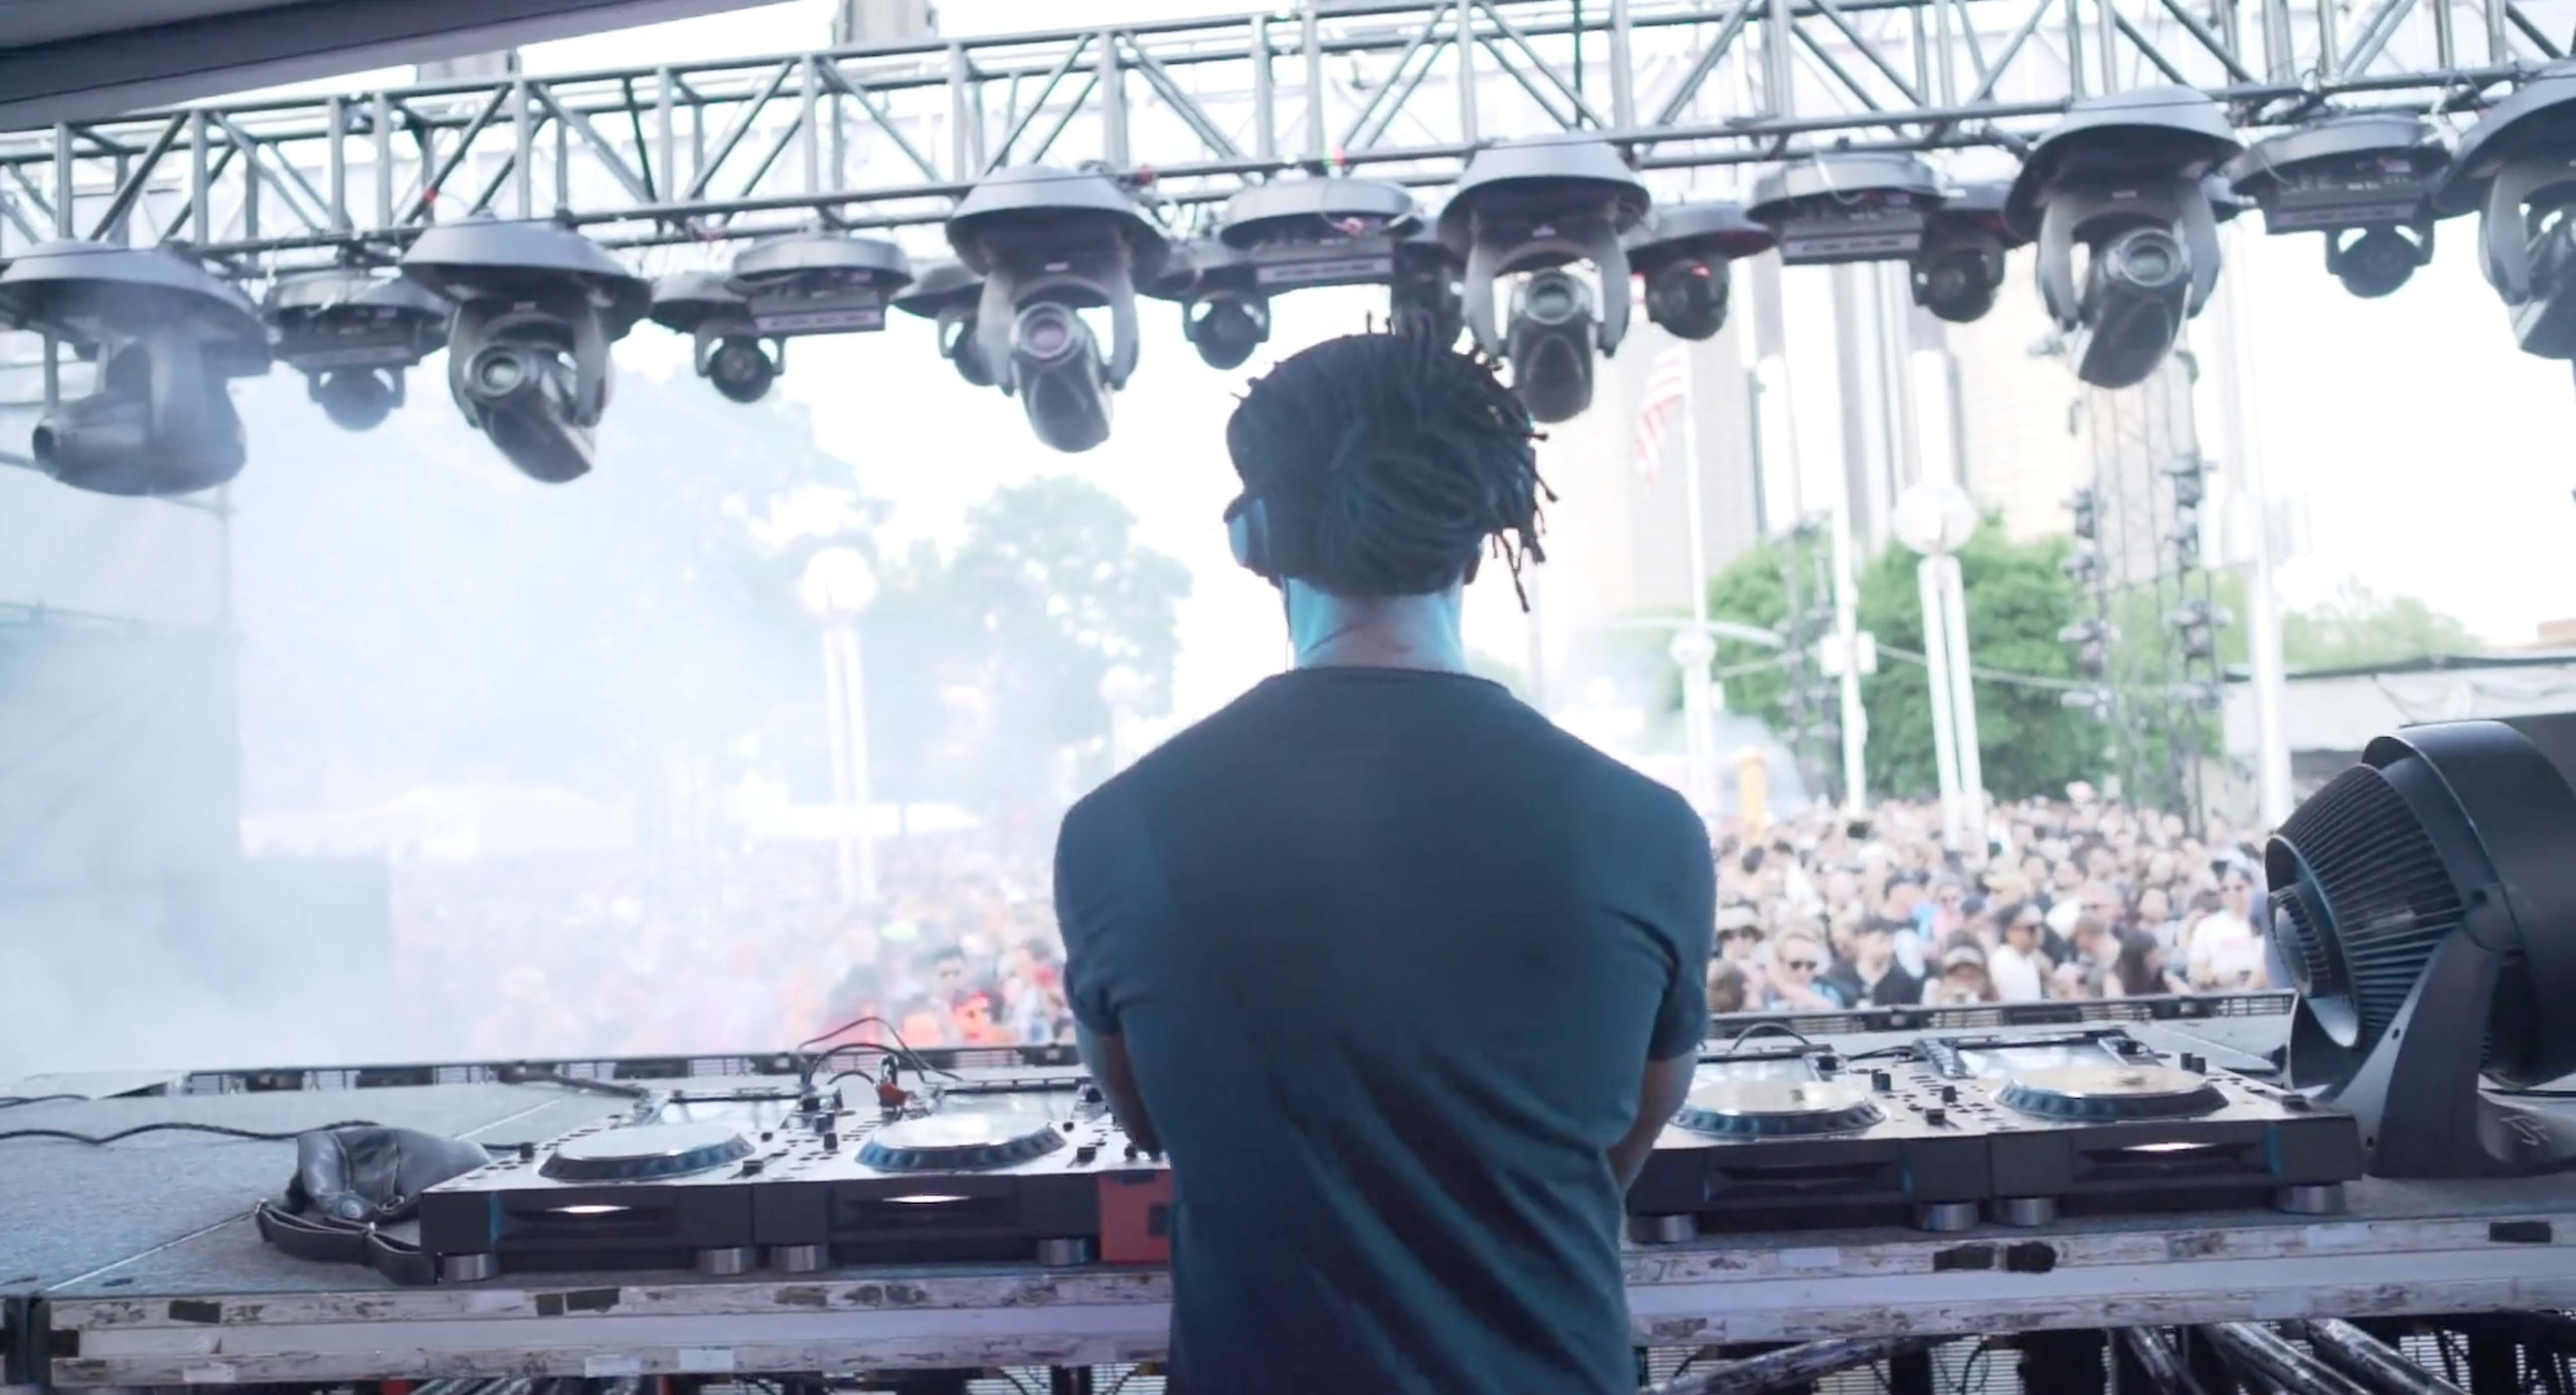 Detroit techno DJ performing at Movement music festival